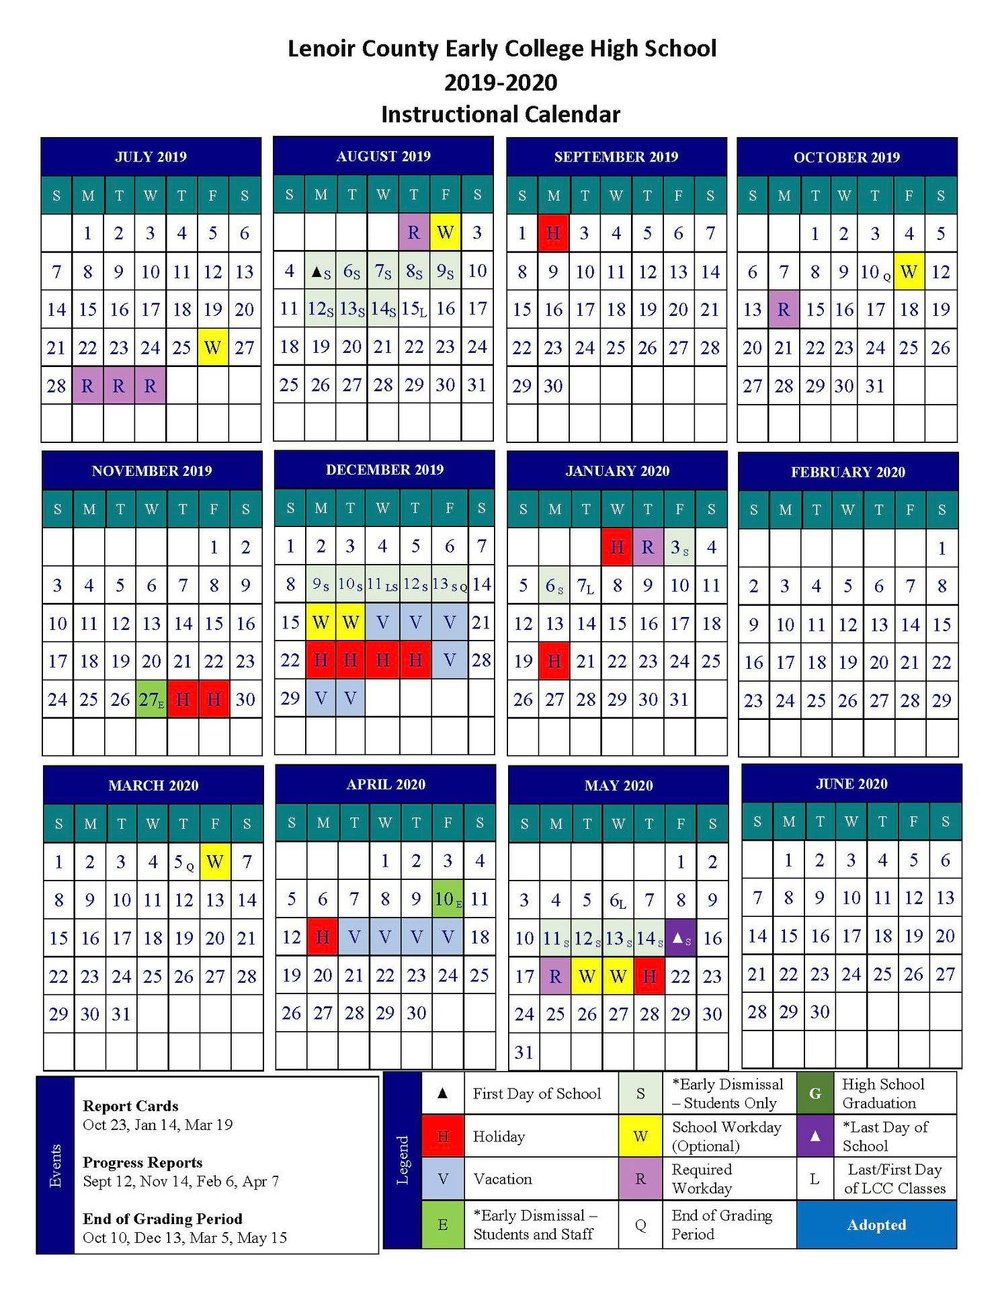 Lcps: Calendar Approved For Next School Year To Give With Onslow County Court Calendars